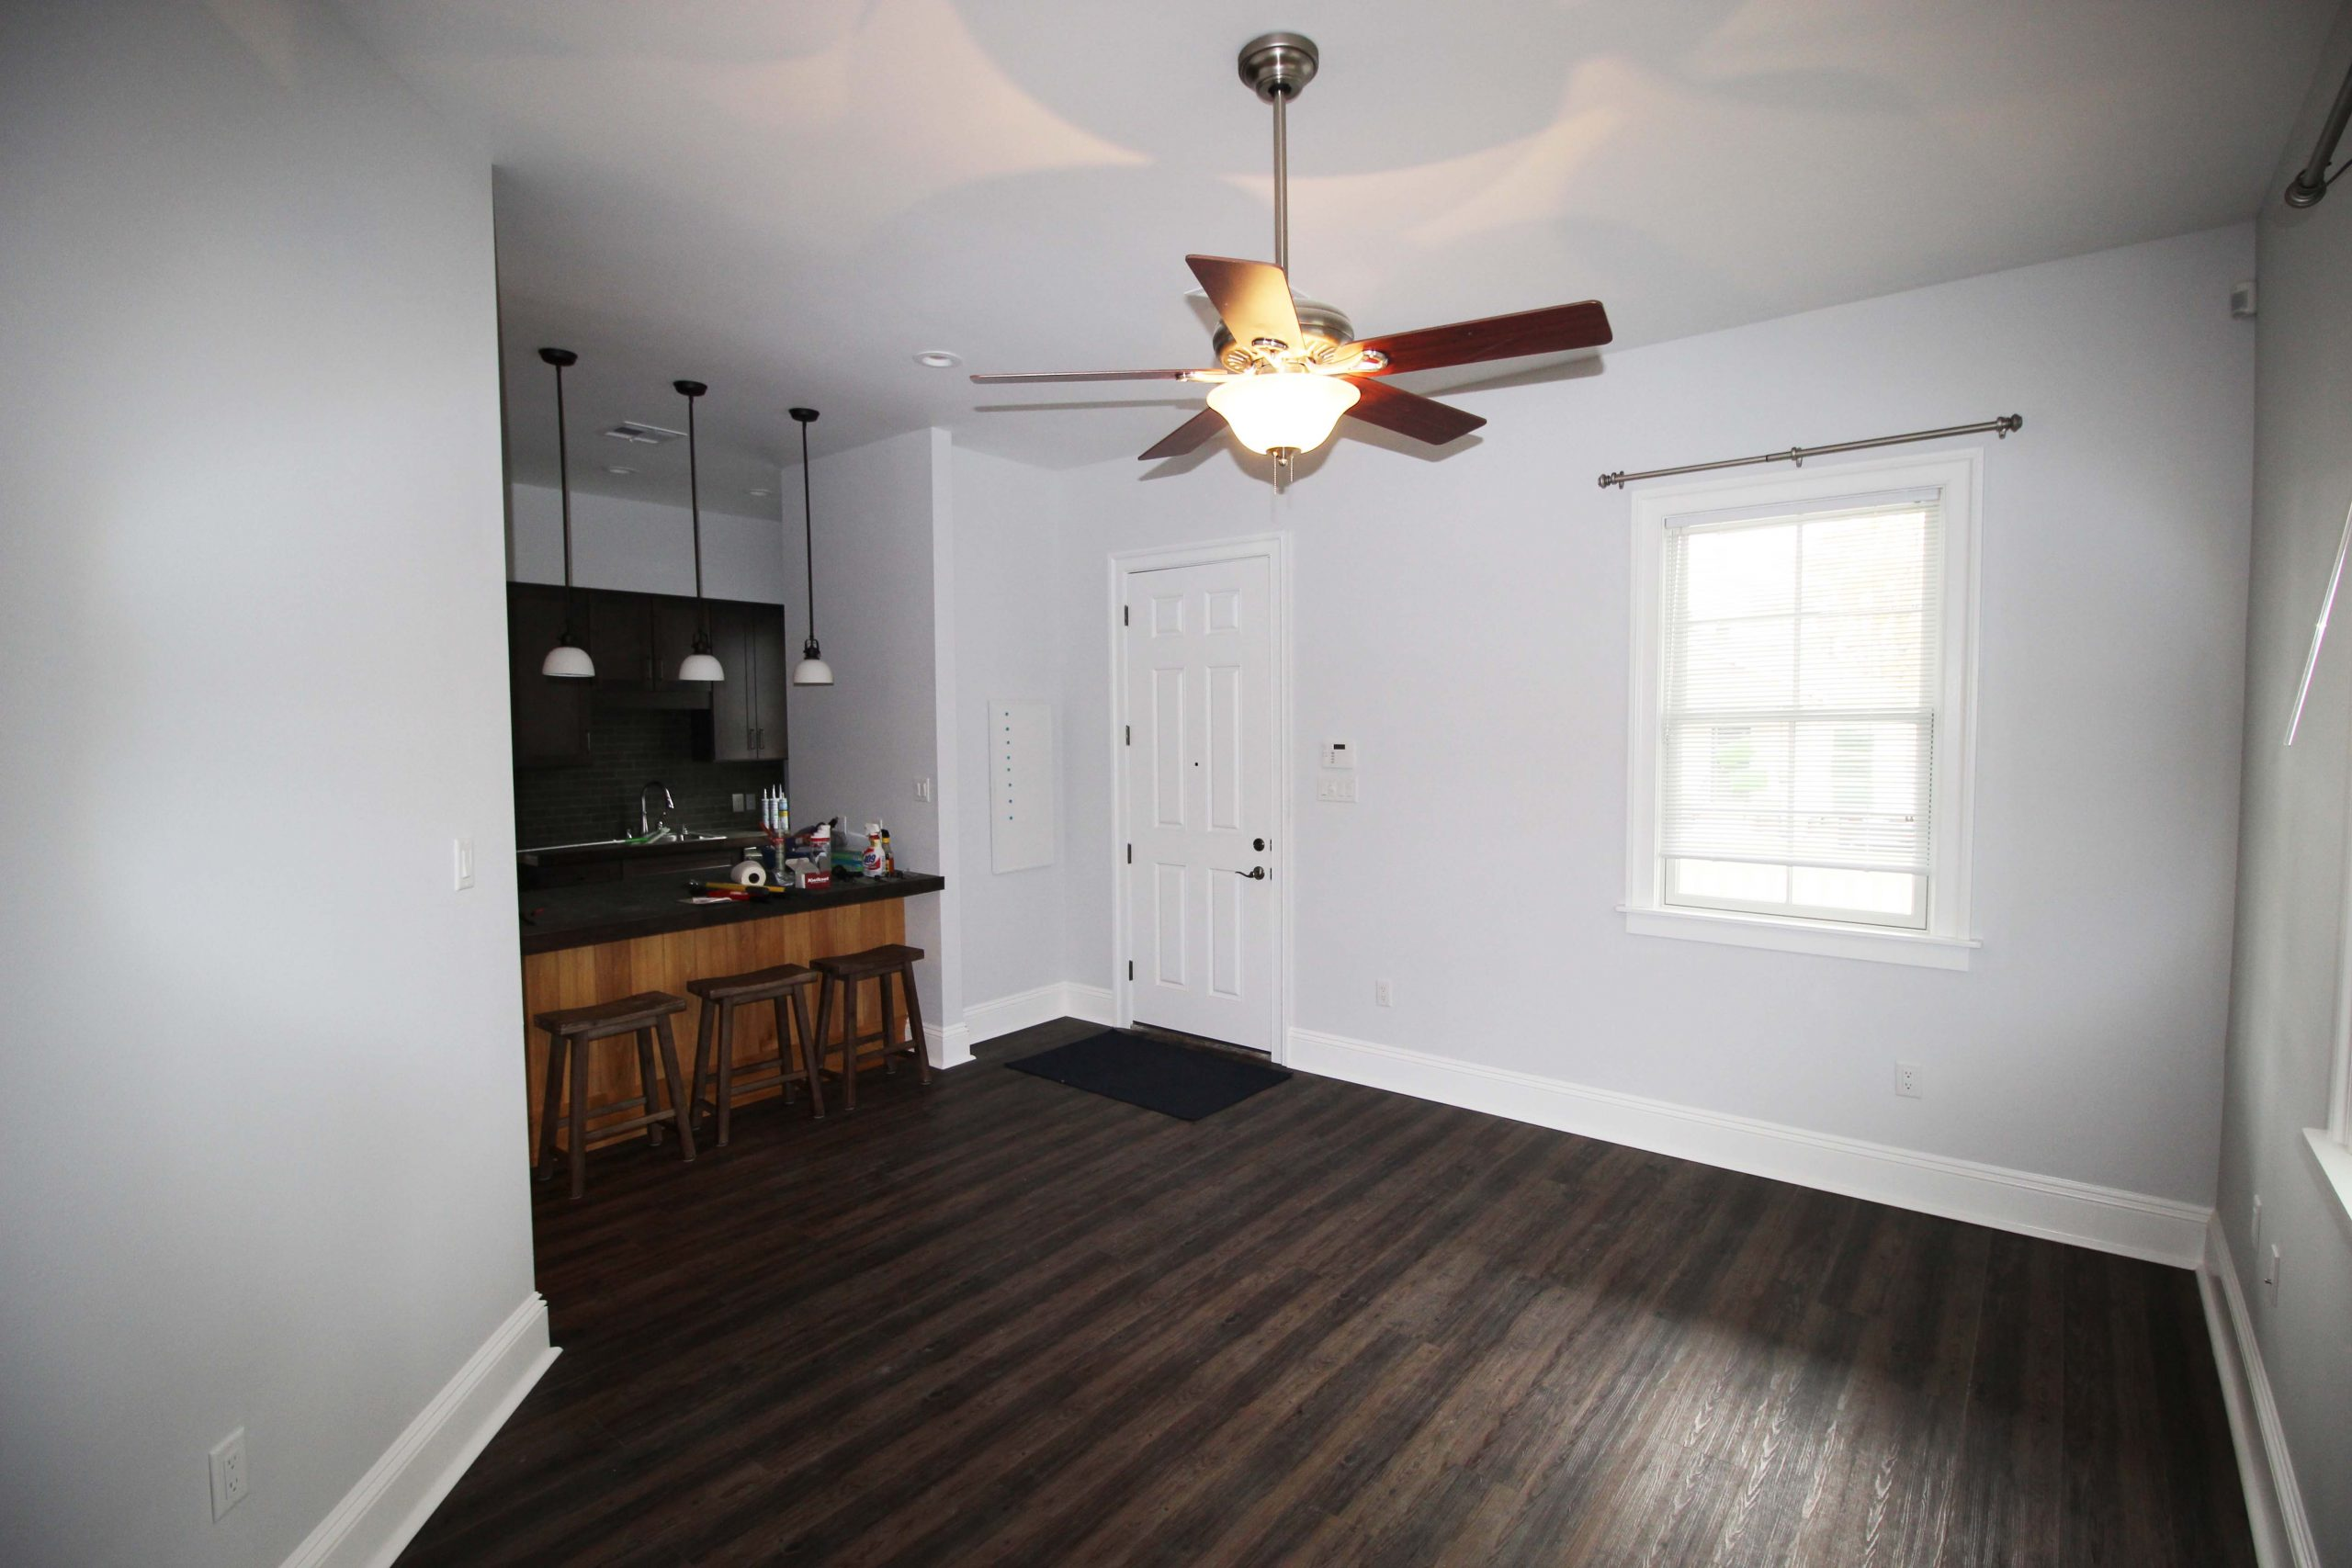 New Orleans Property Manager